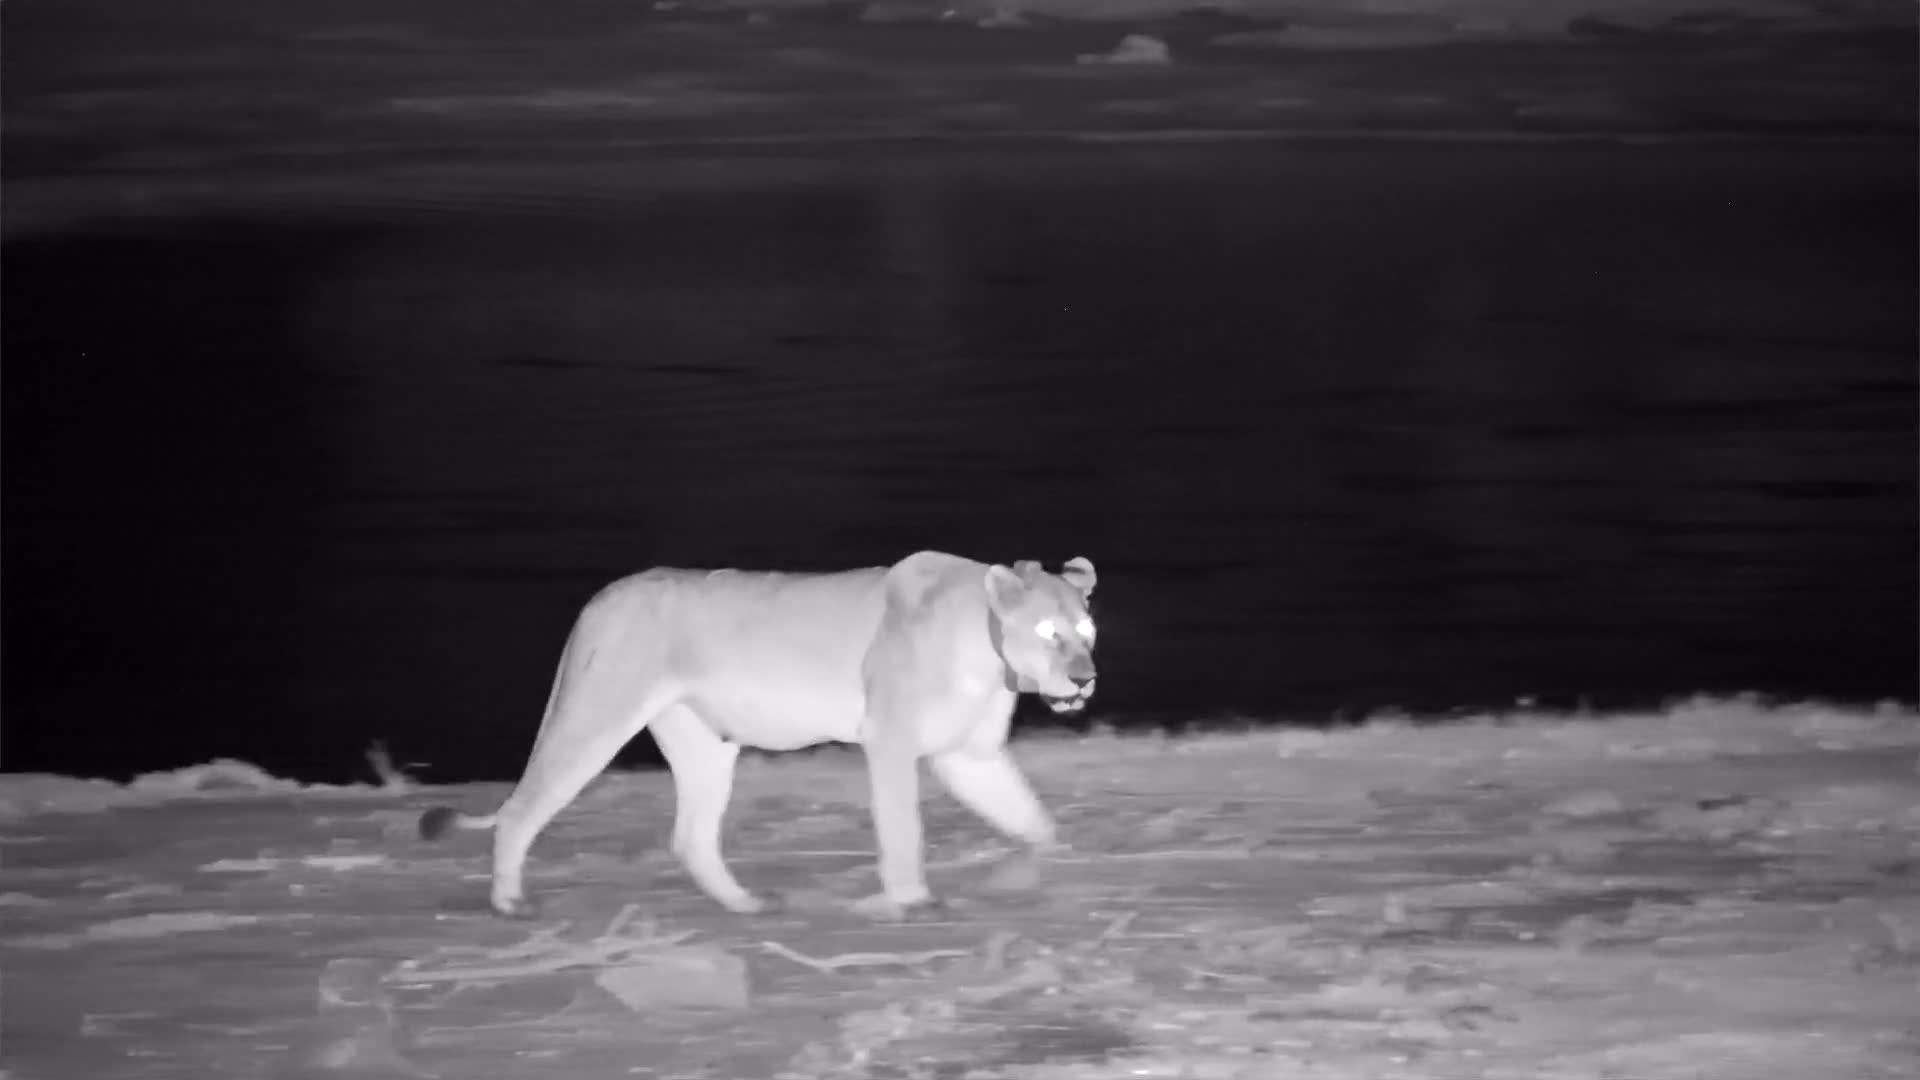 VIDEO: Lion leaving the waterhole roaring along the way